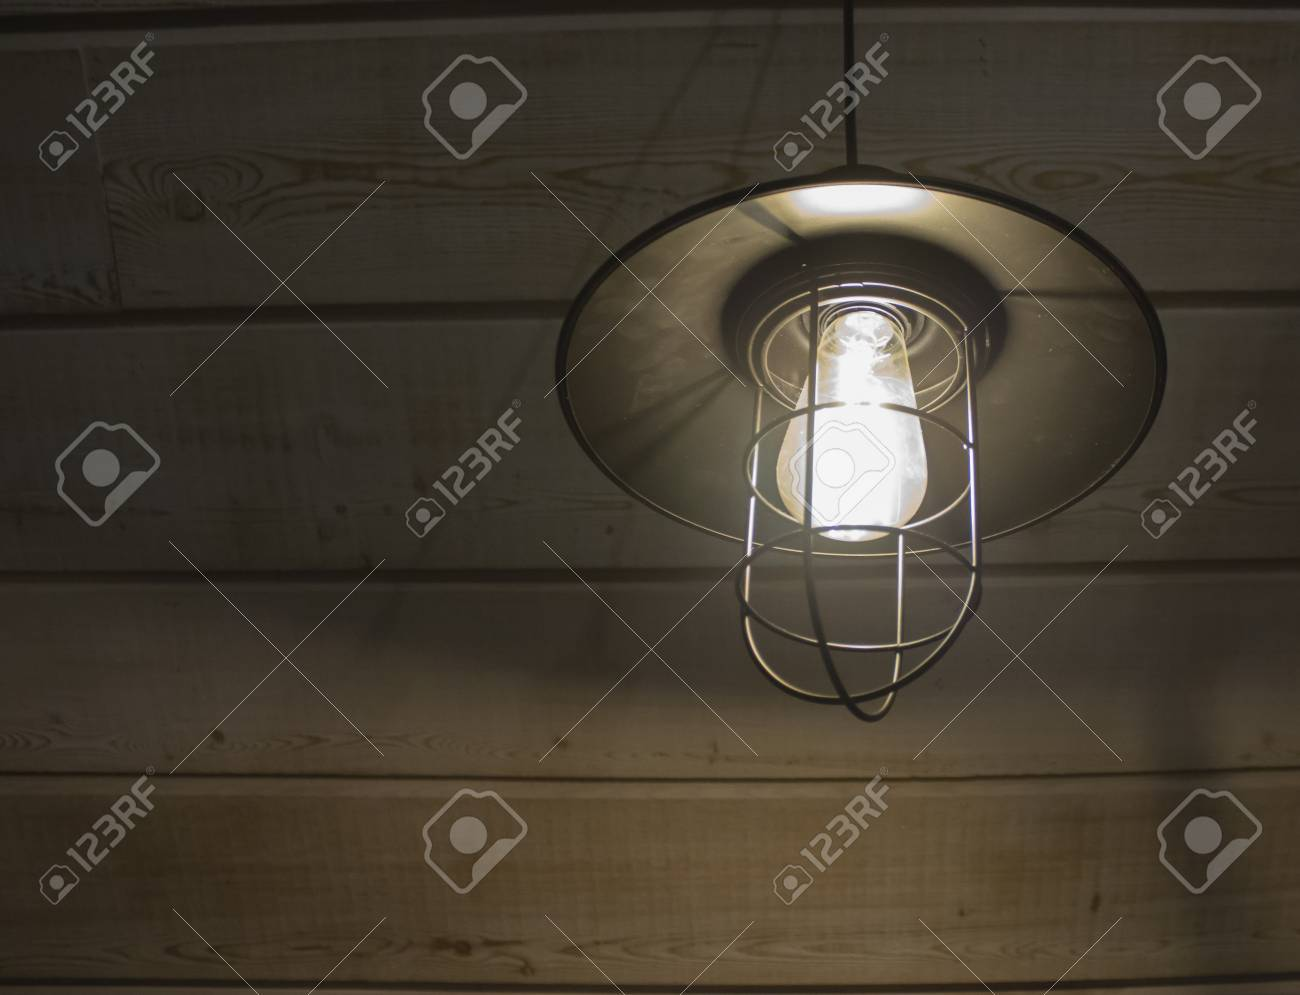 Old Fashioned Vintage Lantern Lamp Burning With A Soft Glow Light Stock Photo Picture And Royalty Free Image Image 70401918